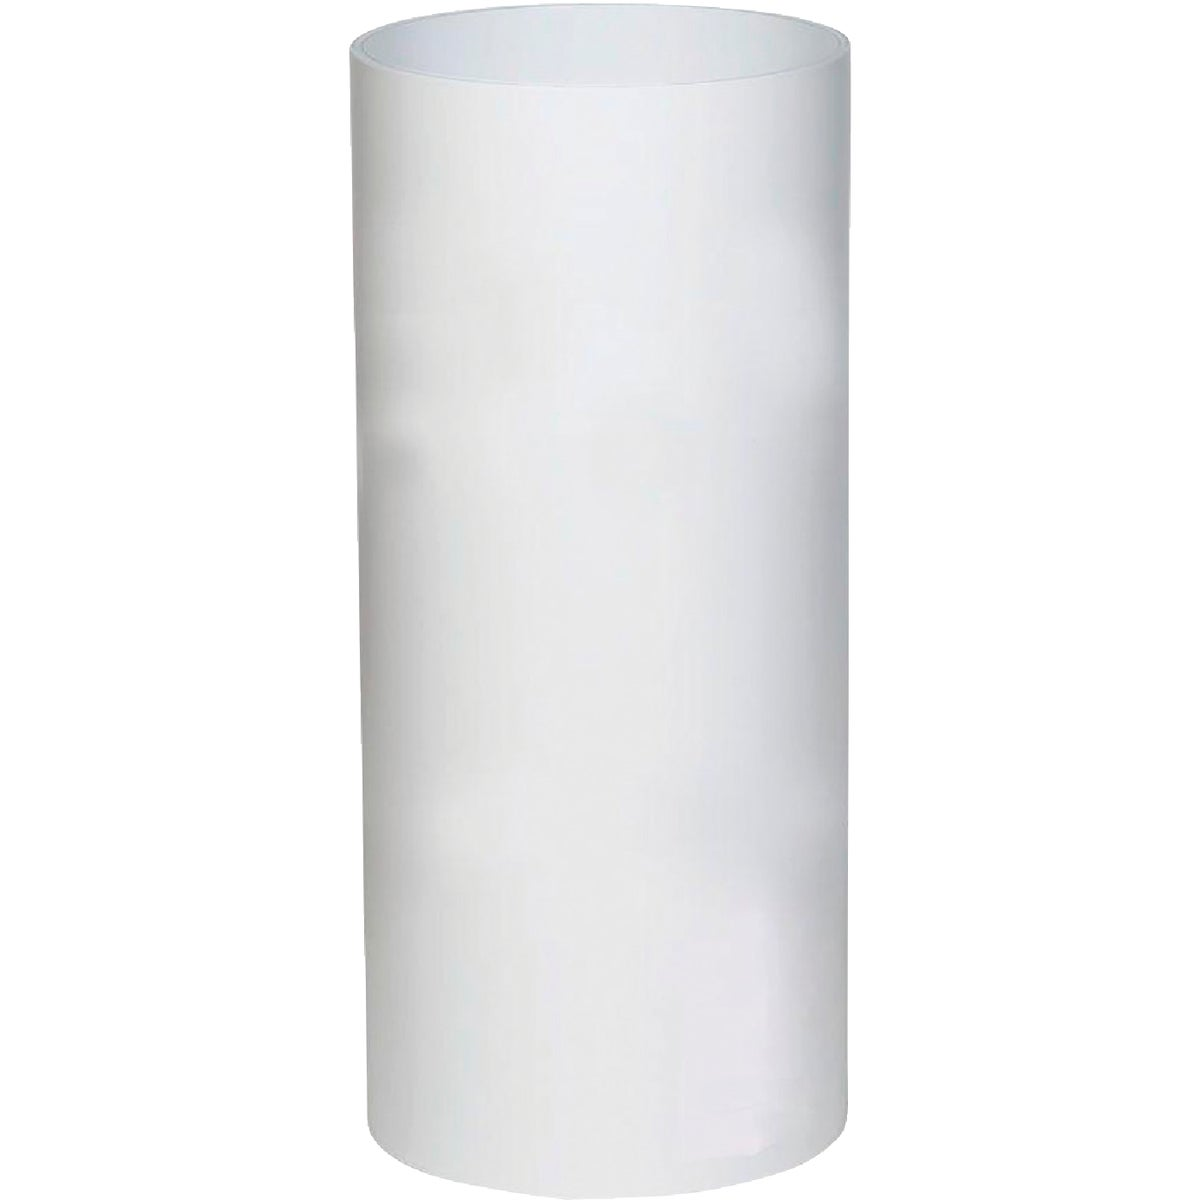 24X50 .018 WHT TRIM COIL - 69124182 by Amerimax Home Prod